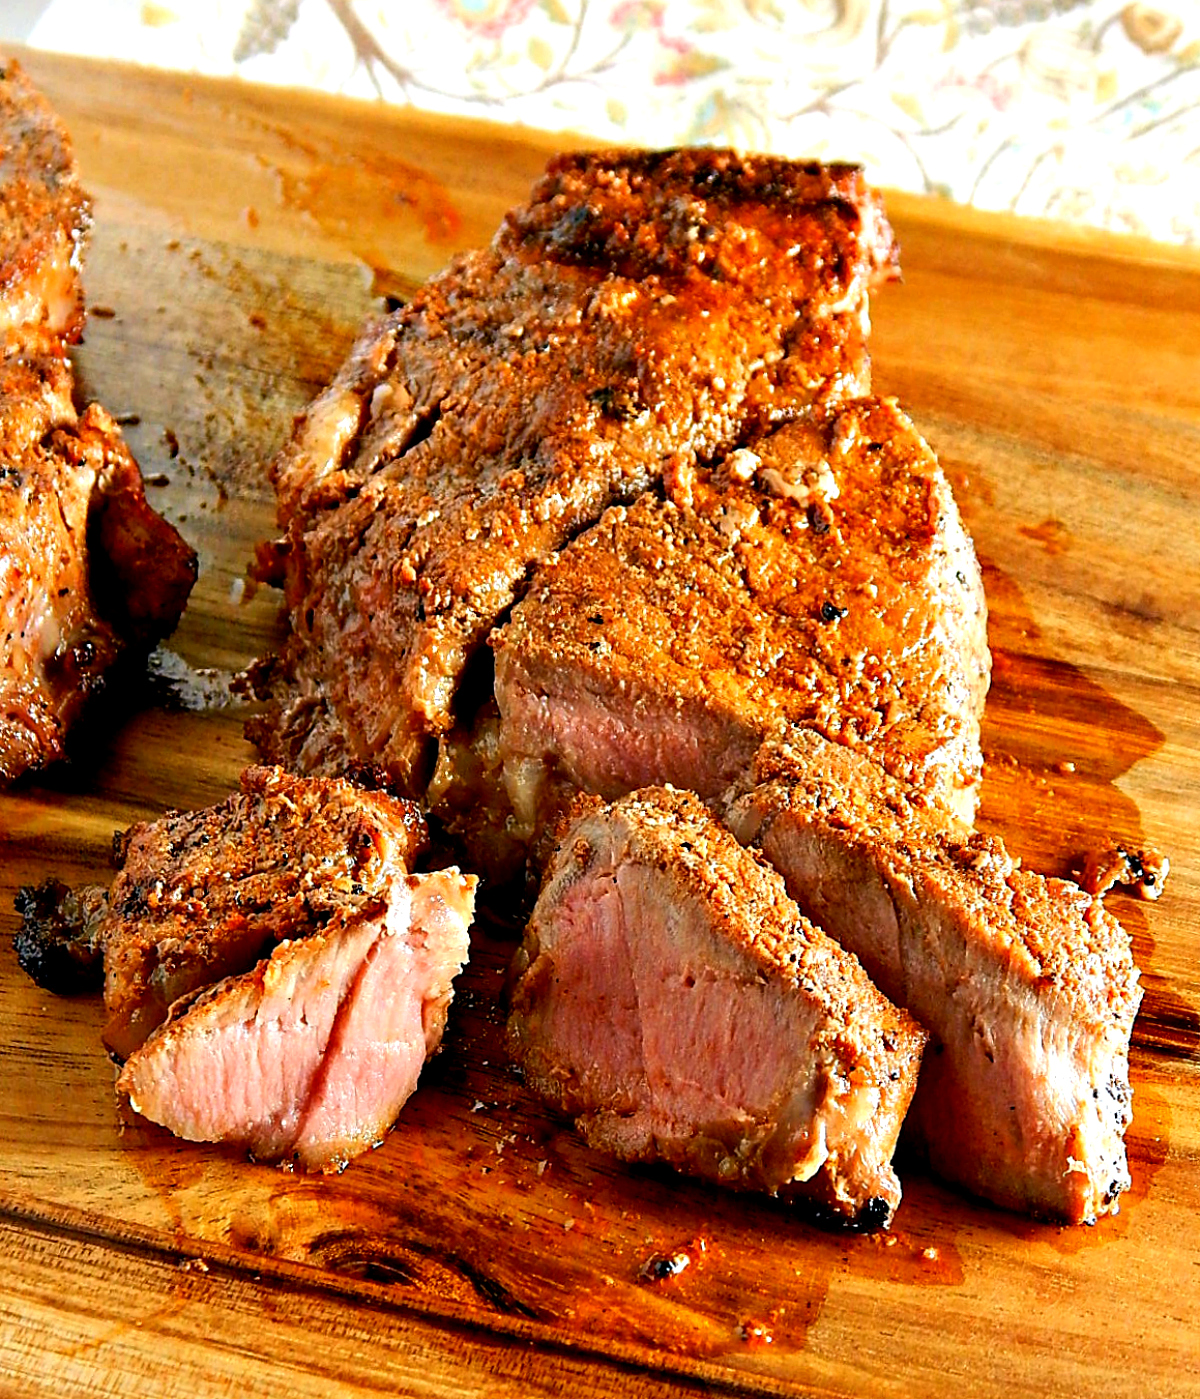 New York Strip Steak with Southwestern Rub